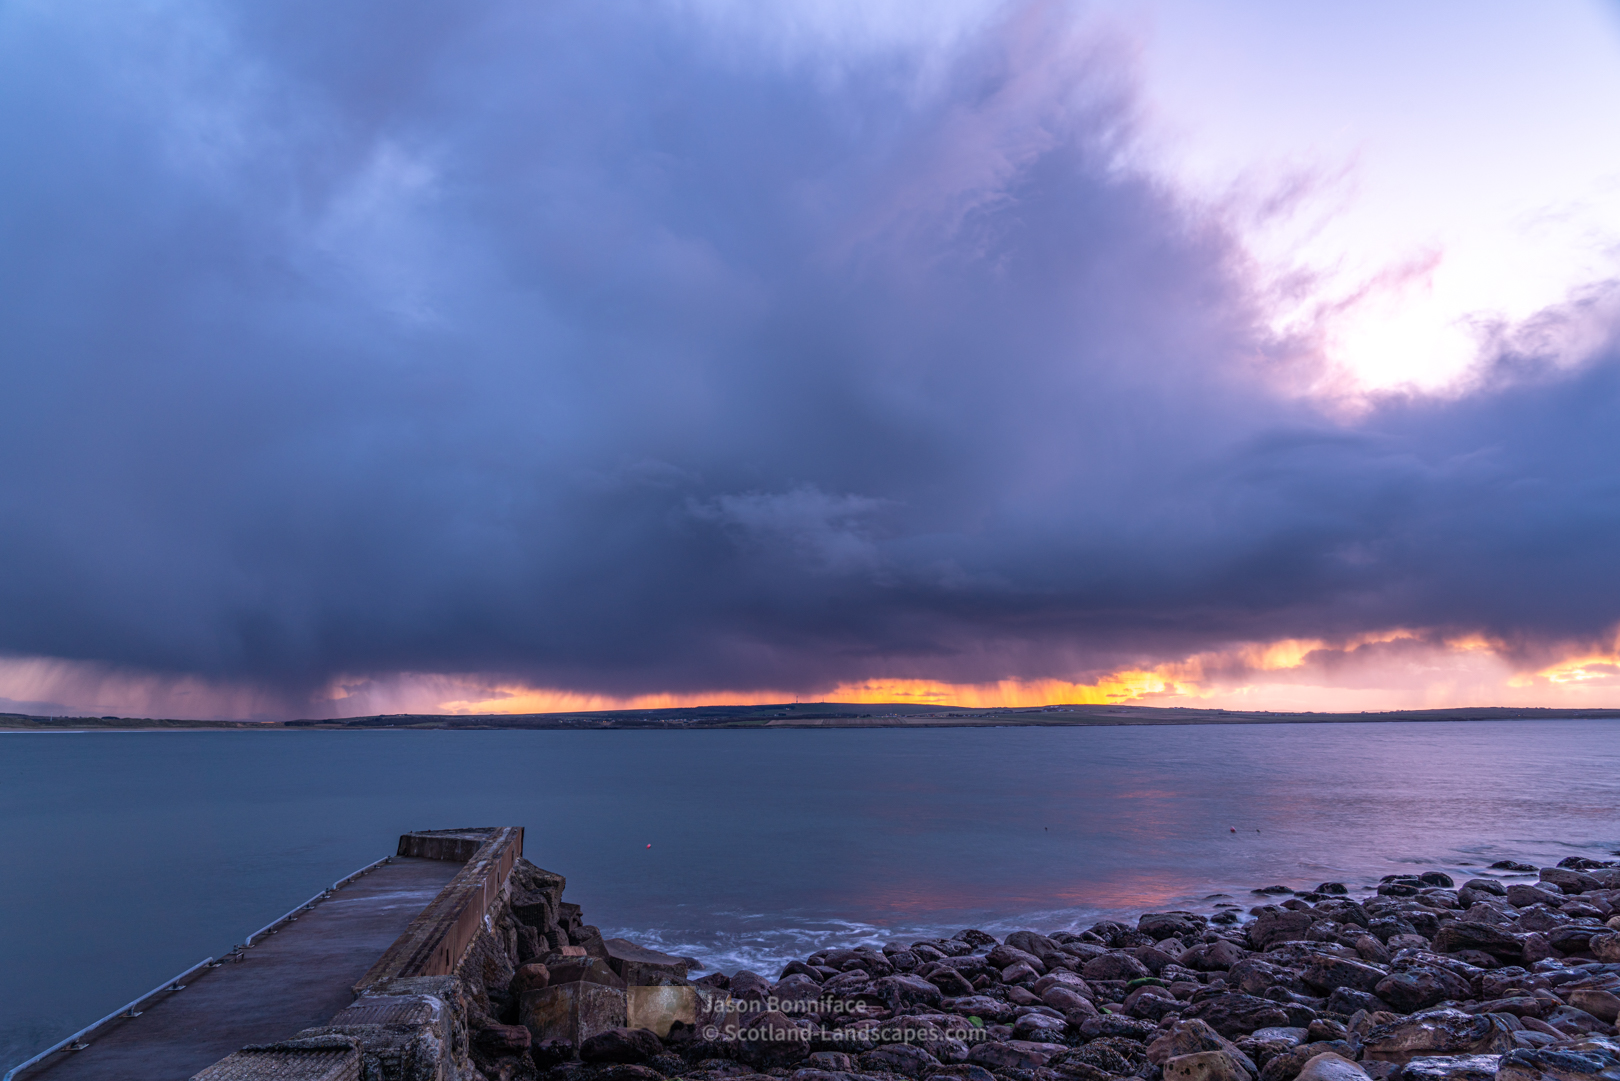 The sunset afterglow lighting the horizon beneath a huge shower cloud moving in from the north